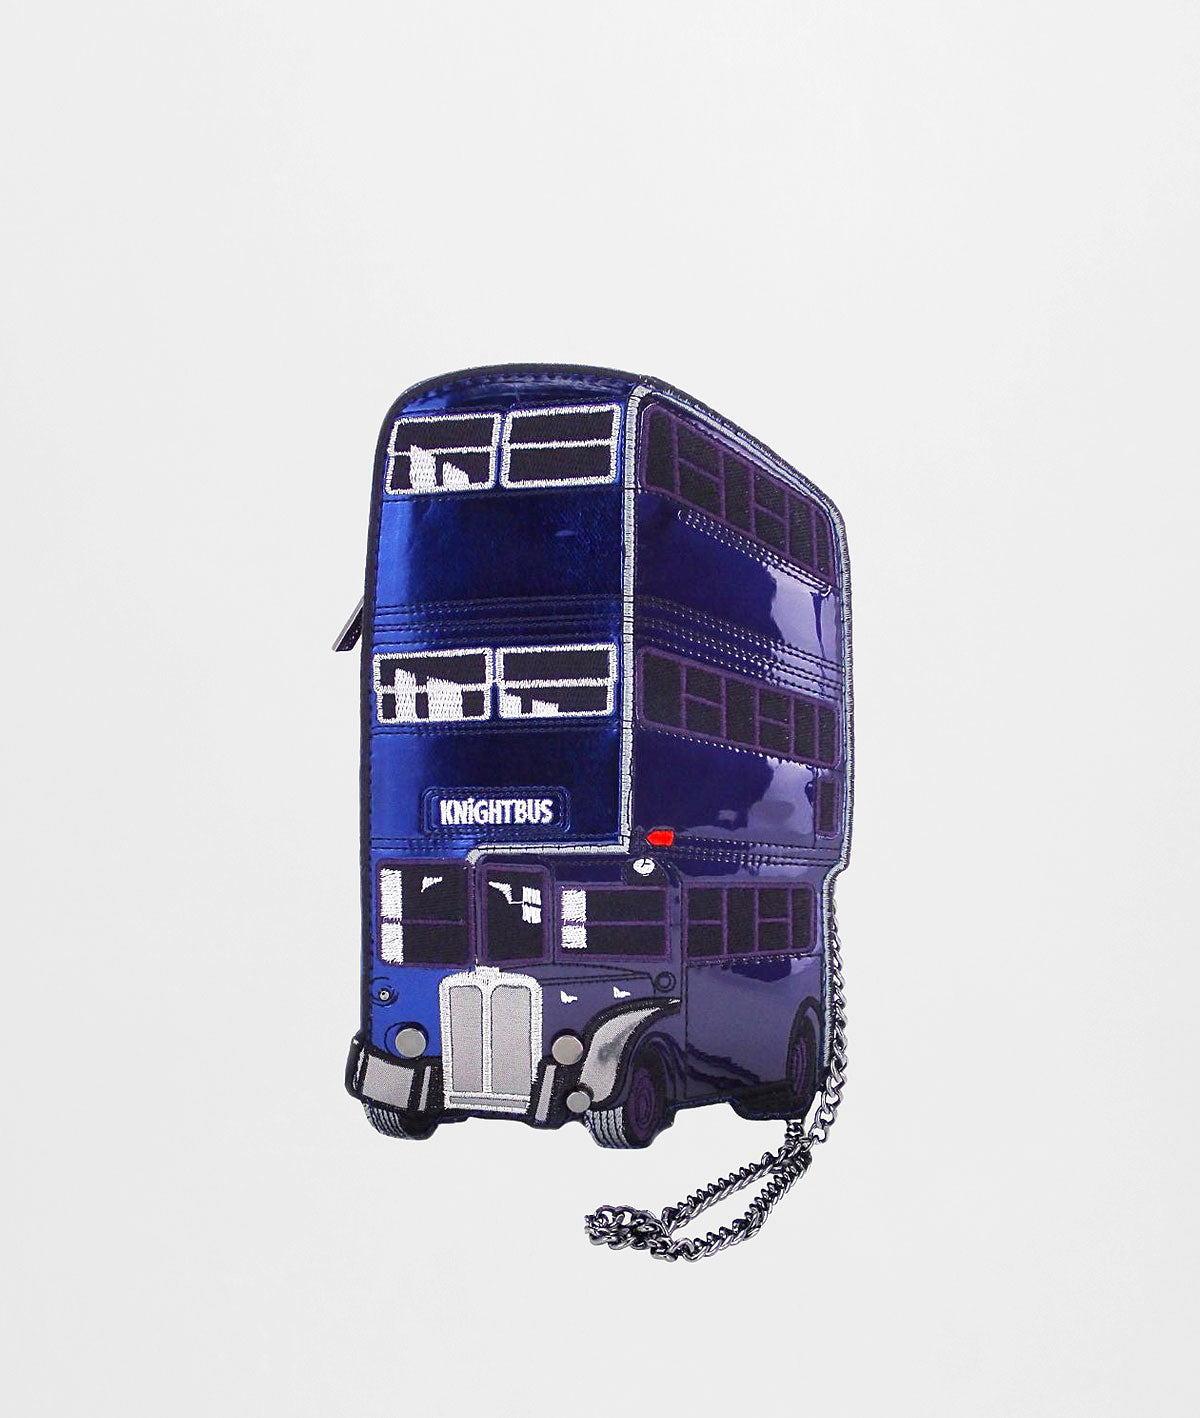 Knight Bus Crossbody